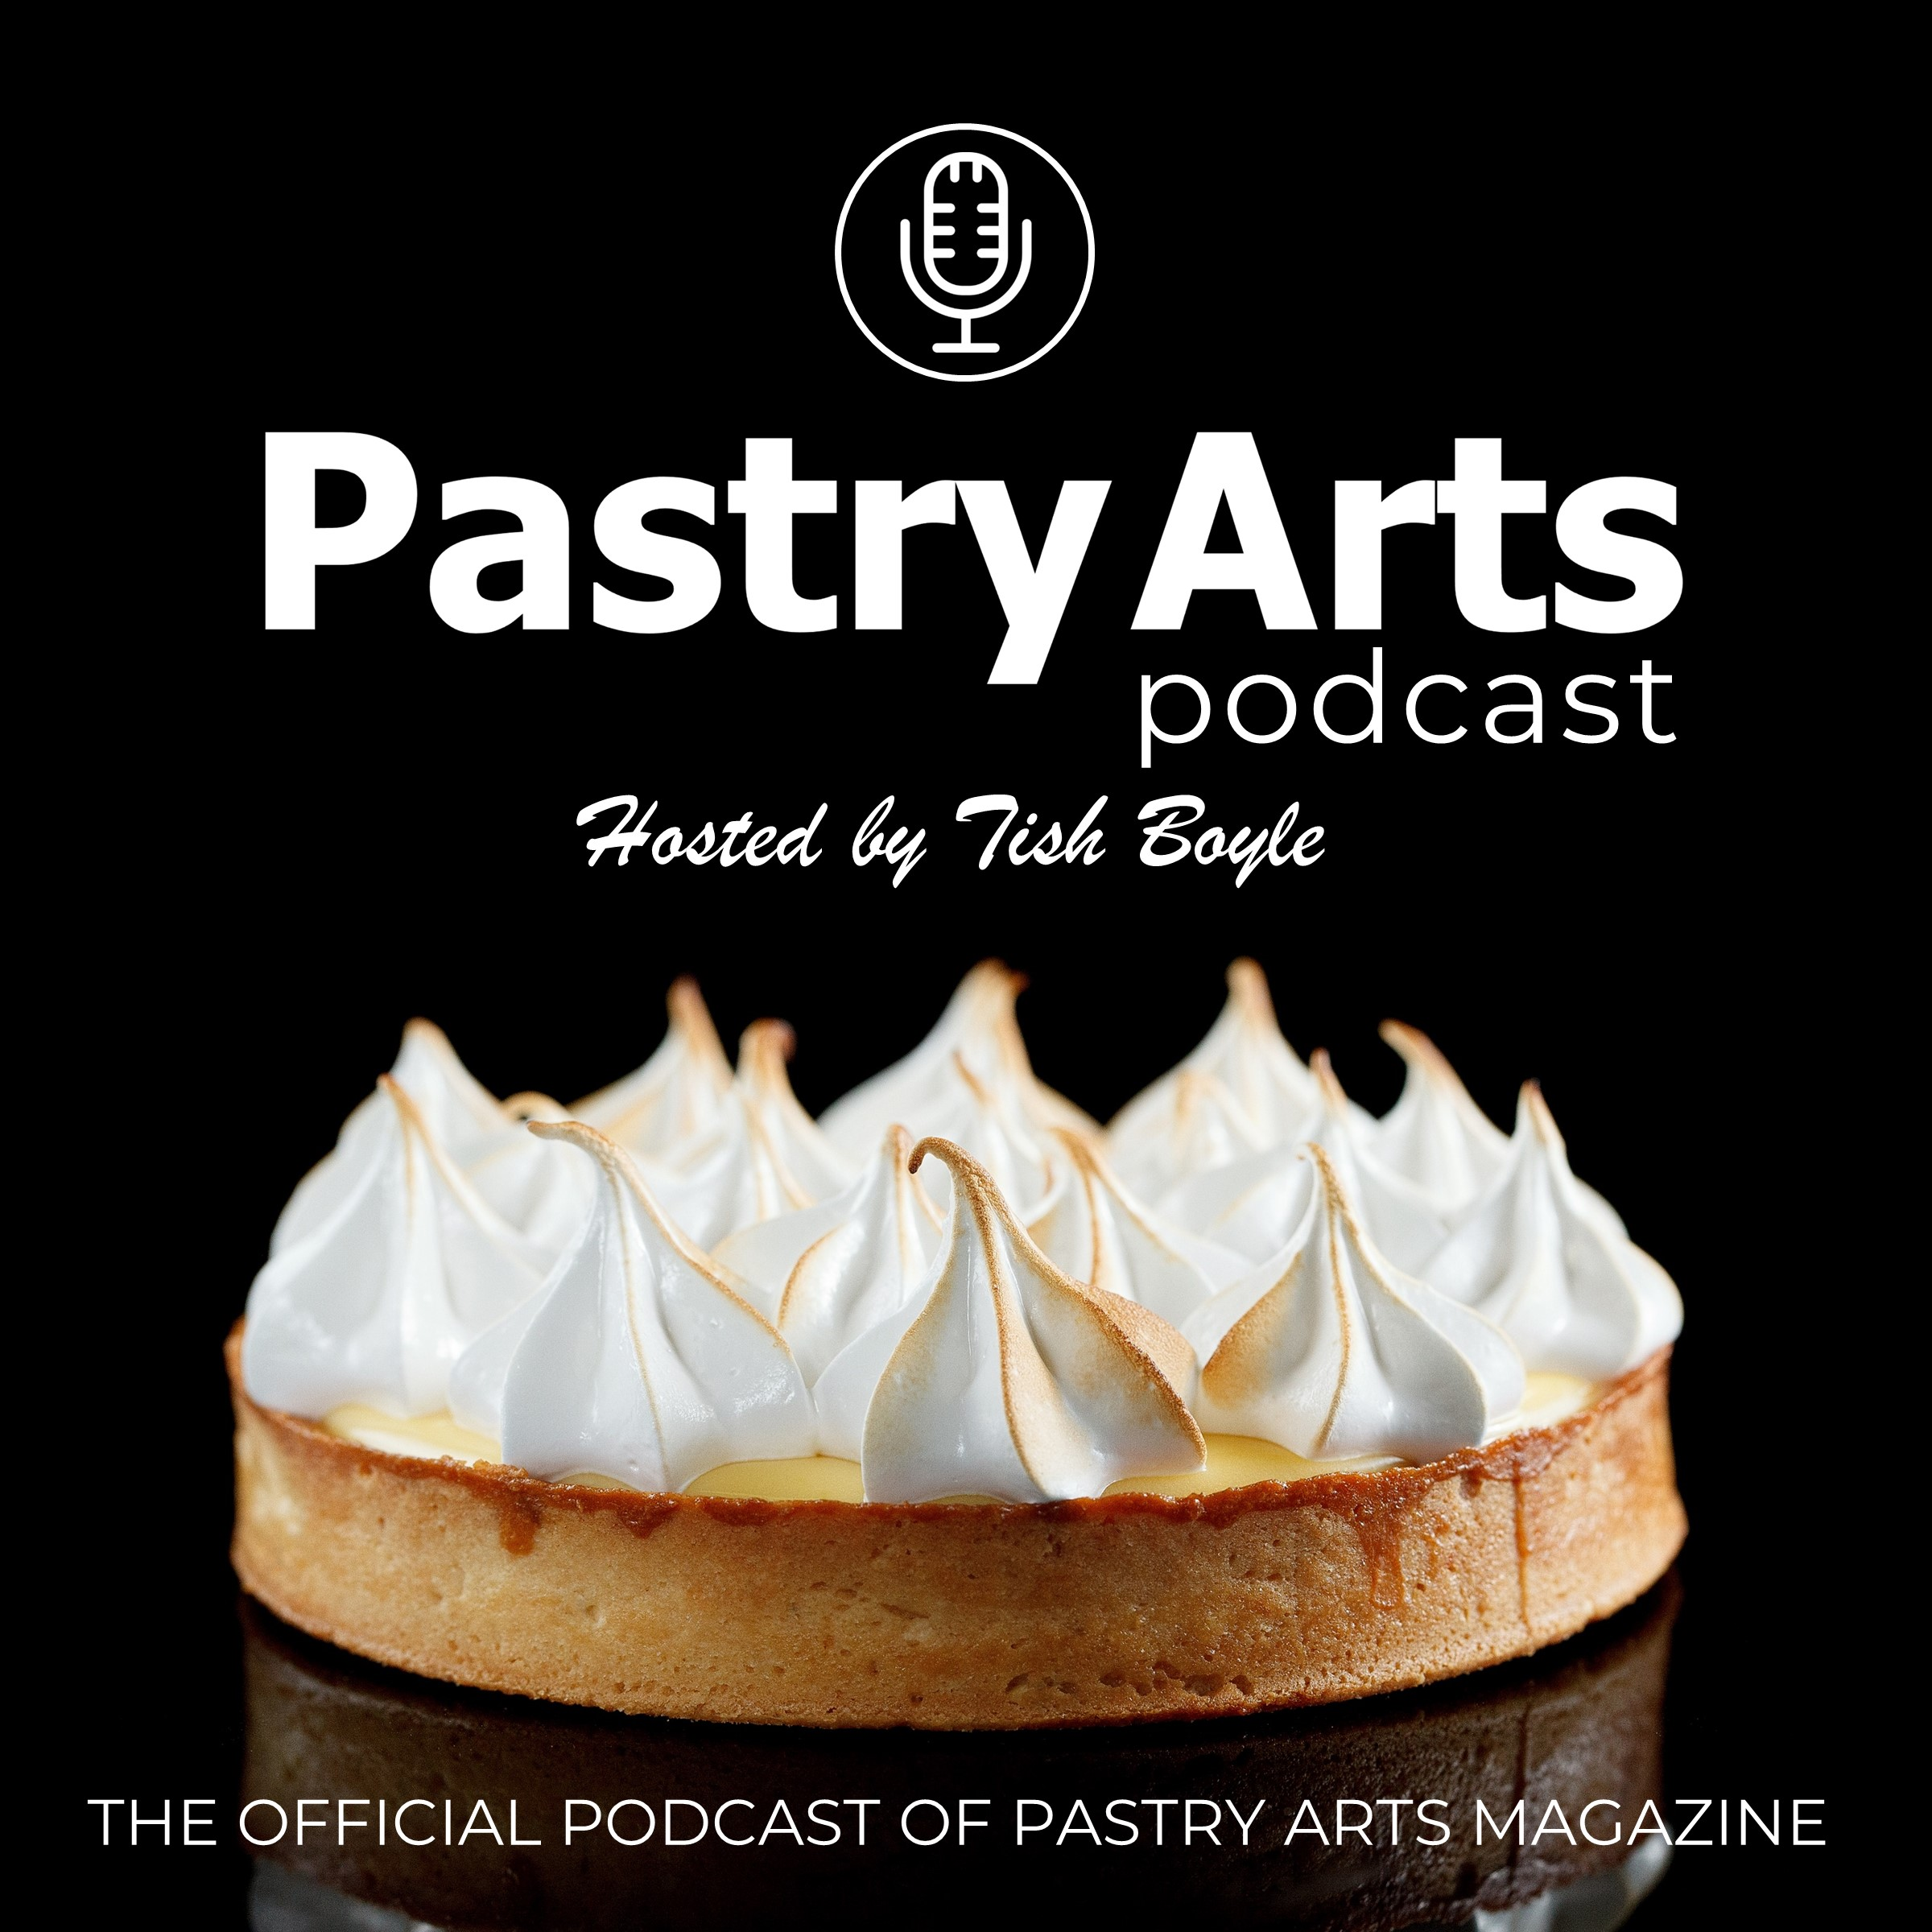 Pastry Arts Podcast show art